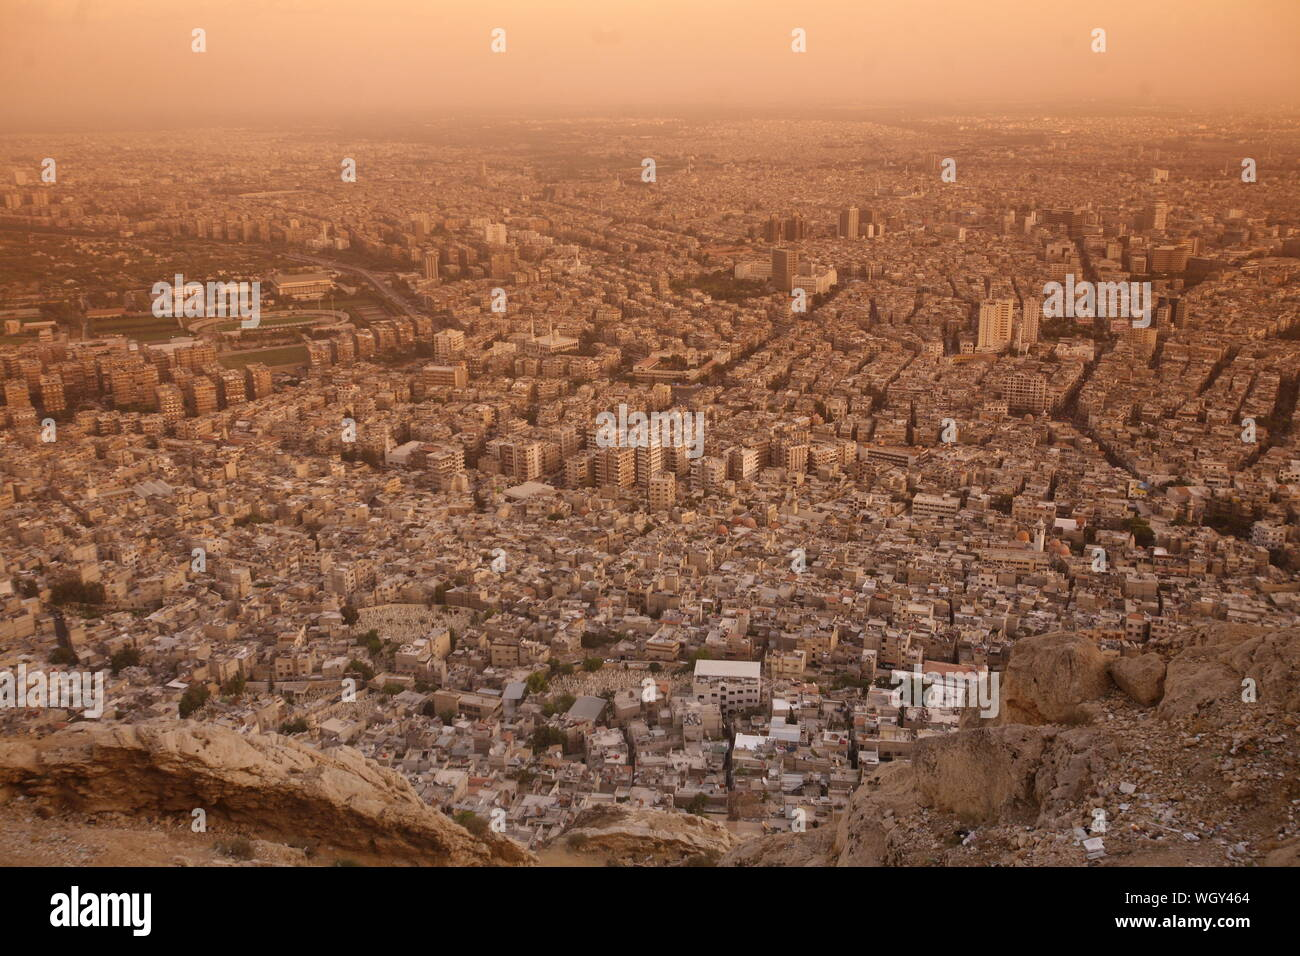 the city centre of Damaskus before the war in Syria in the middle east Stock Photo